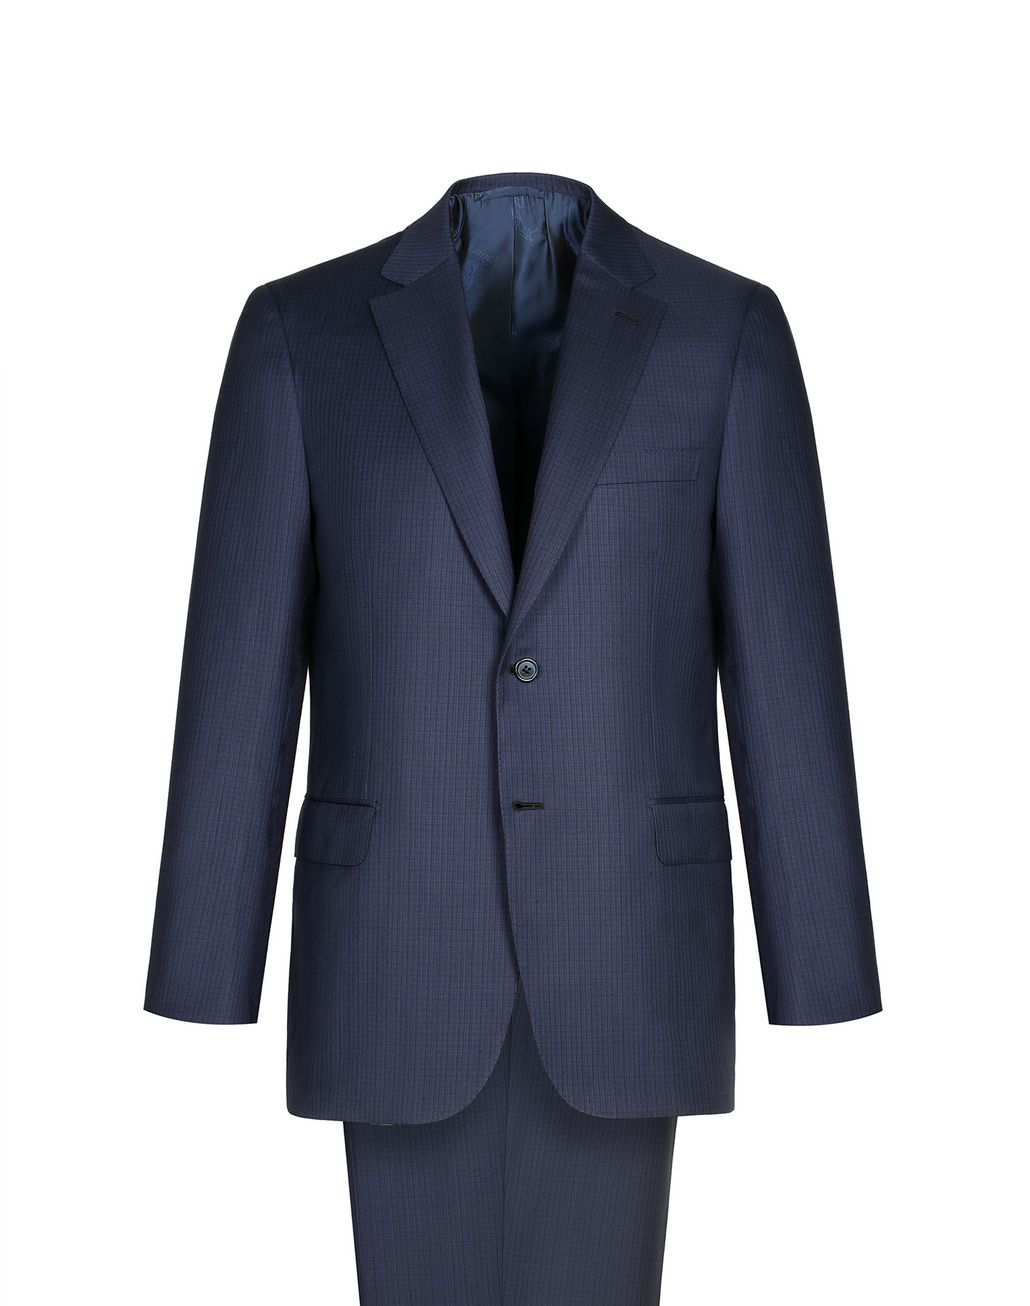 BRIONI Navy-Blue Micro-Check Herringbone Ventiquattro Brunico Suit Suits & Jackets [*** pickupInStoreShippingNotGuaranteed_info ***] f